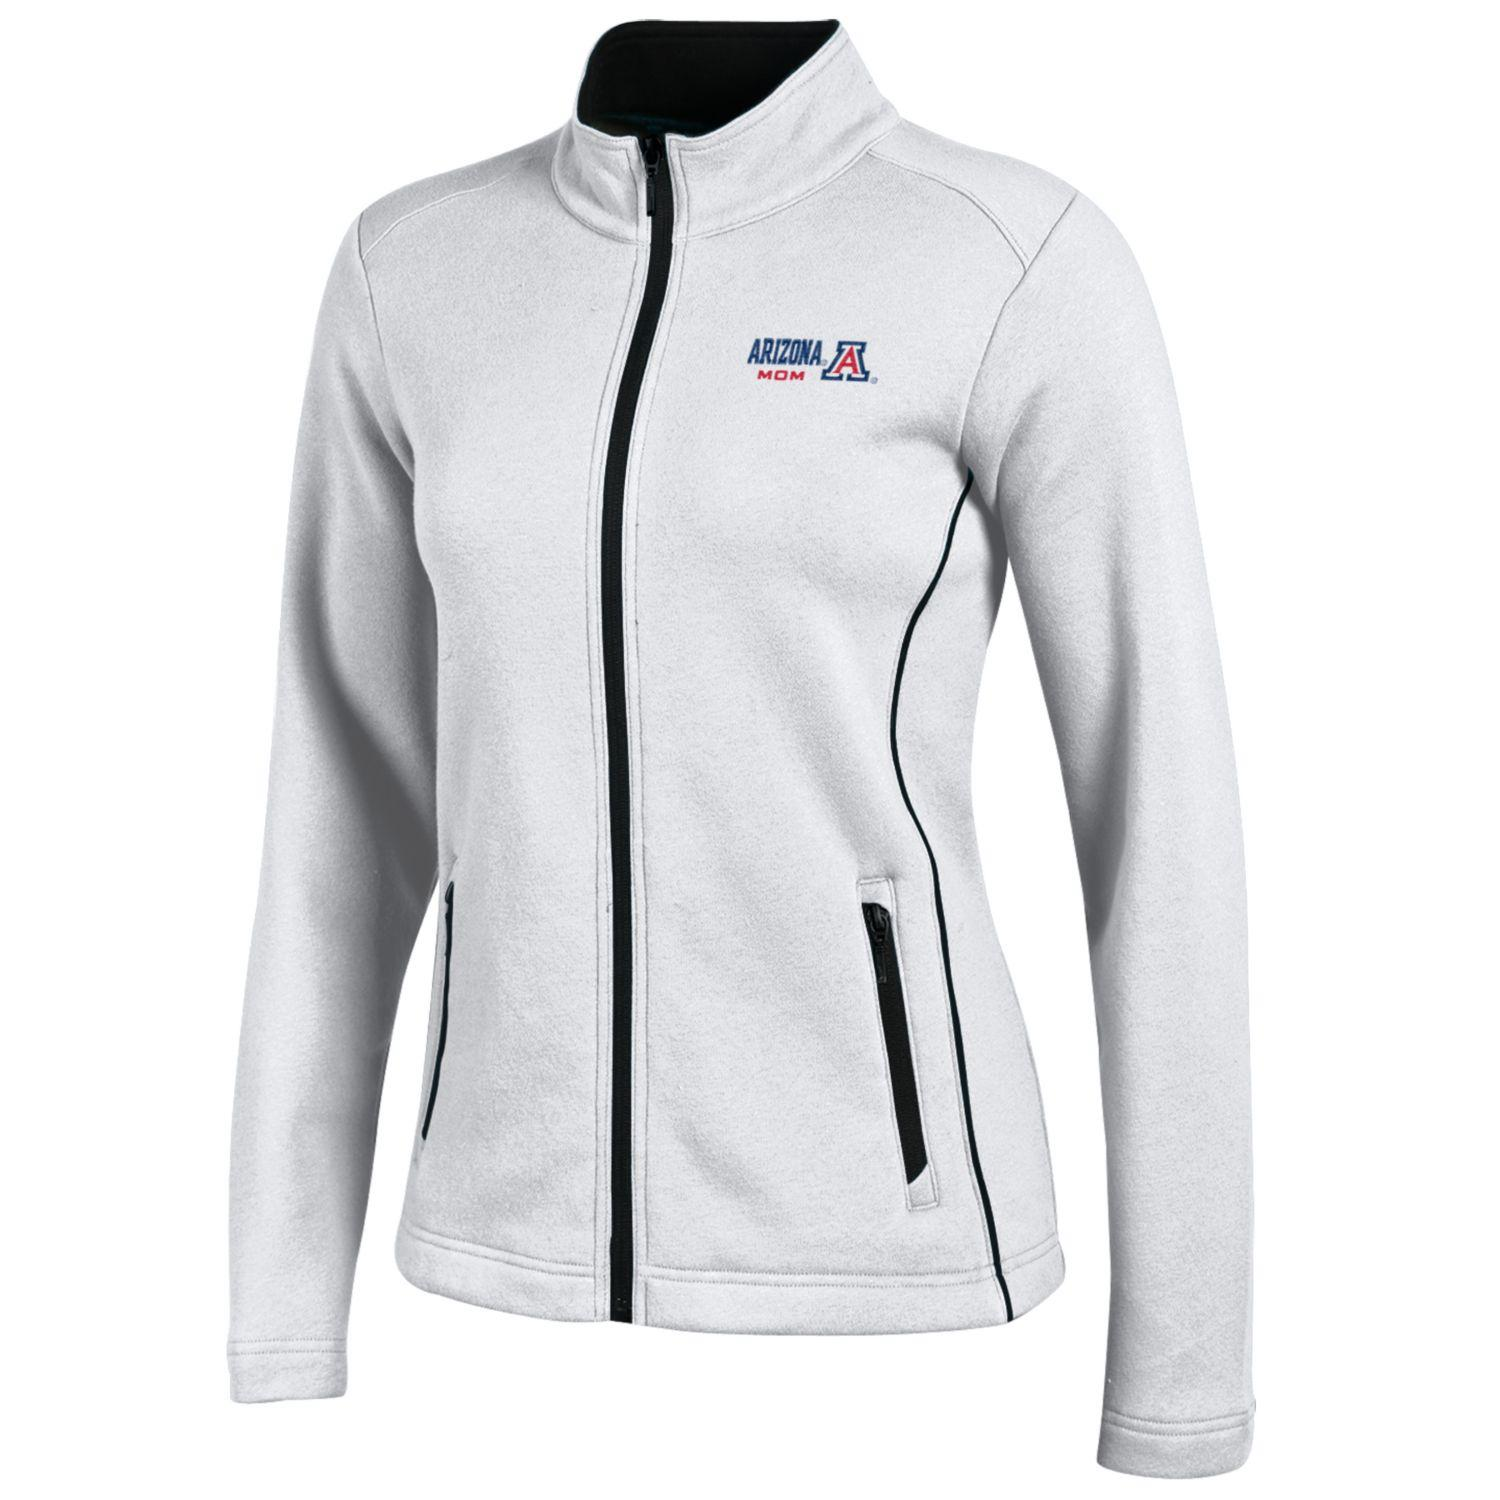 Image For Gear For Sports: Arizona Mom Deluxe Touch Full Zip White